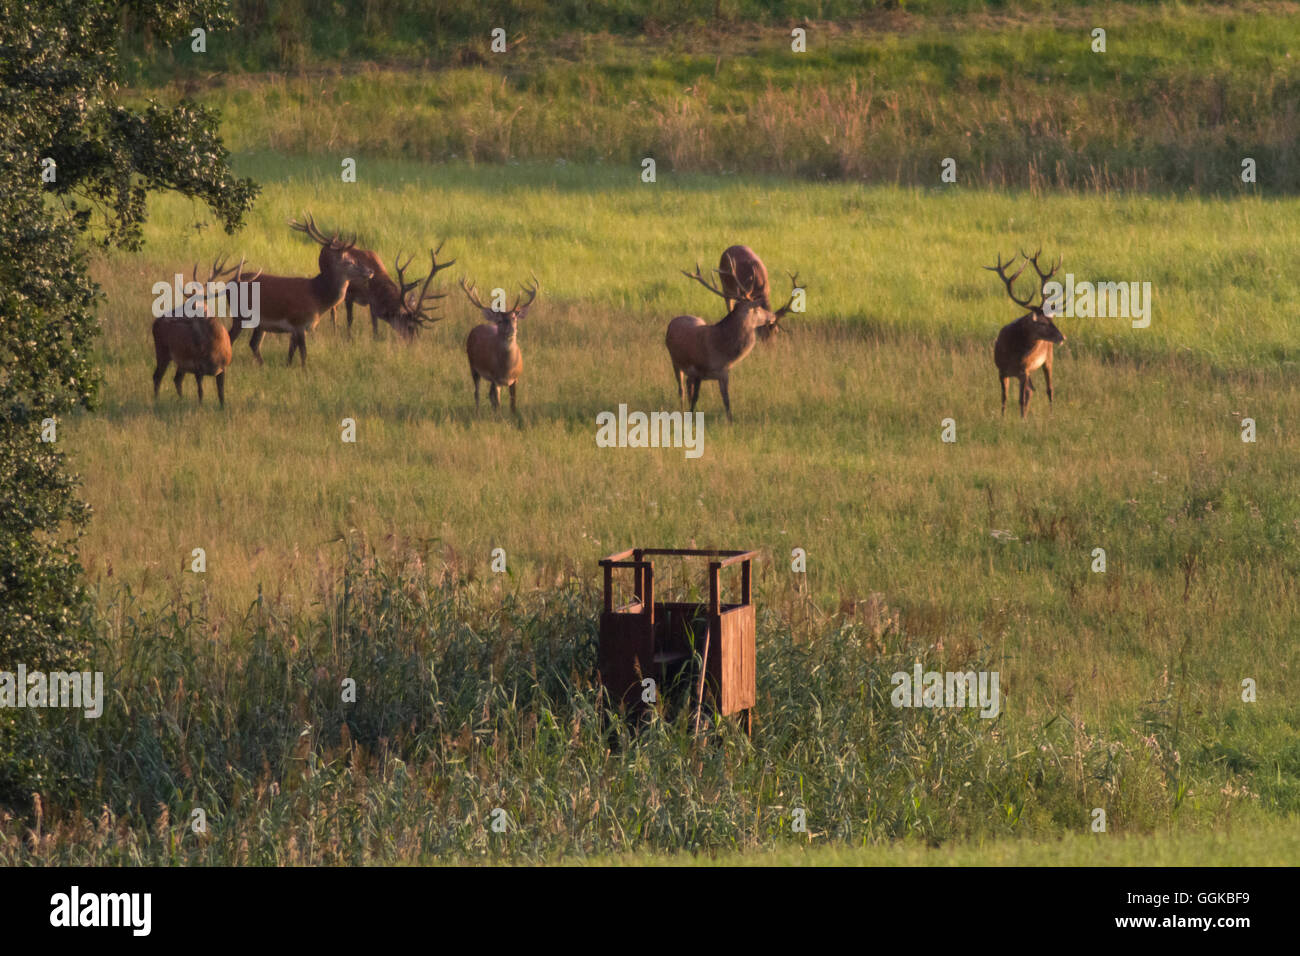 Red deer on a meadow, Klepenshagen nature reserve, Deutsche Wildtier Stiftung, Mecklenburg-Vorpommern, Germany - Stock Image